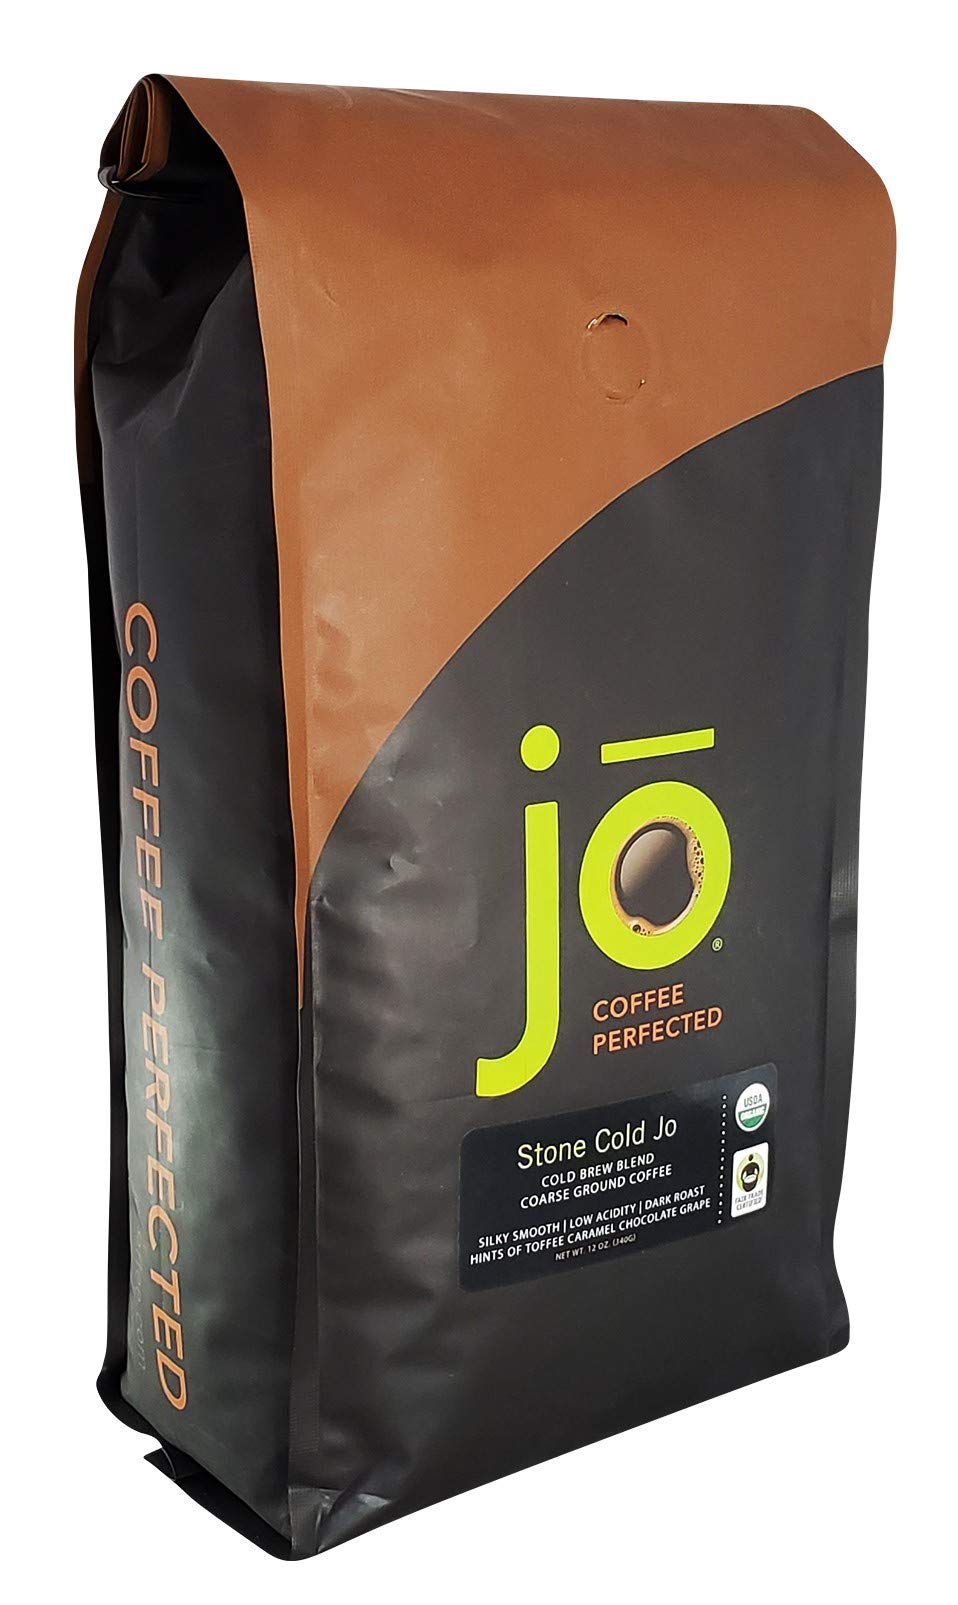 STONE COLD JO: 2 lb, Cold Brew Coffee Blend, Dark Roast, Coarse Ground Organic Coffee, Silky, Smooth, Low Acidity, USDA Certified Organic, Fair Trade Certified, NON-GMO, Great French Press Hot Brew by Jo Coffee